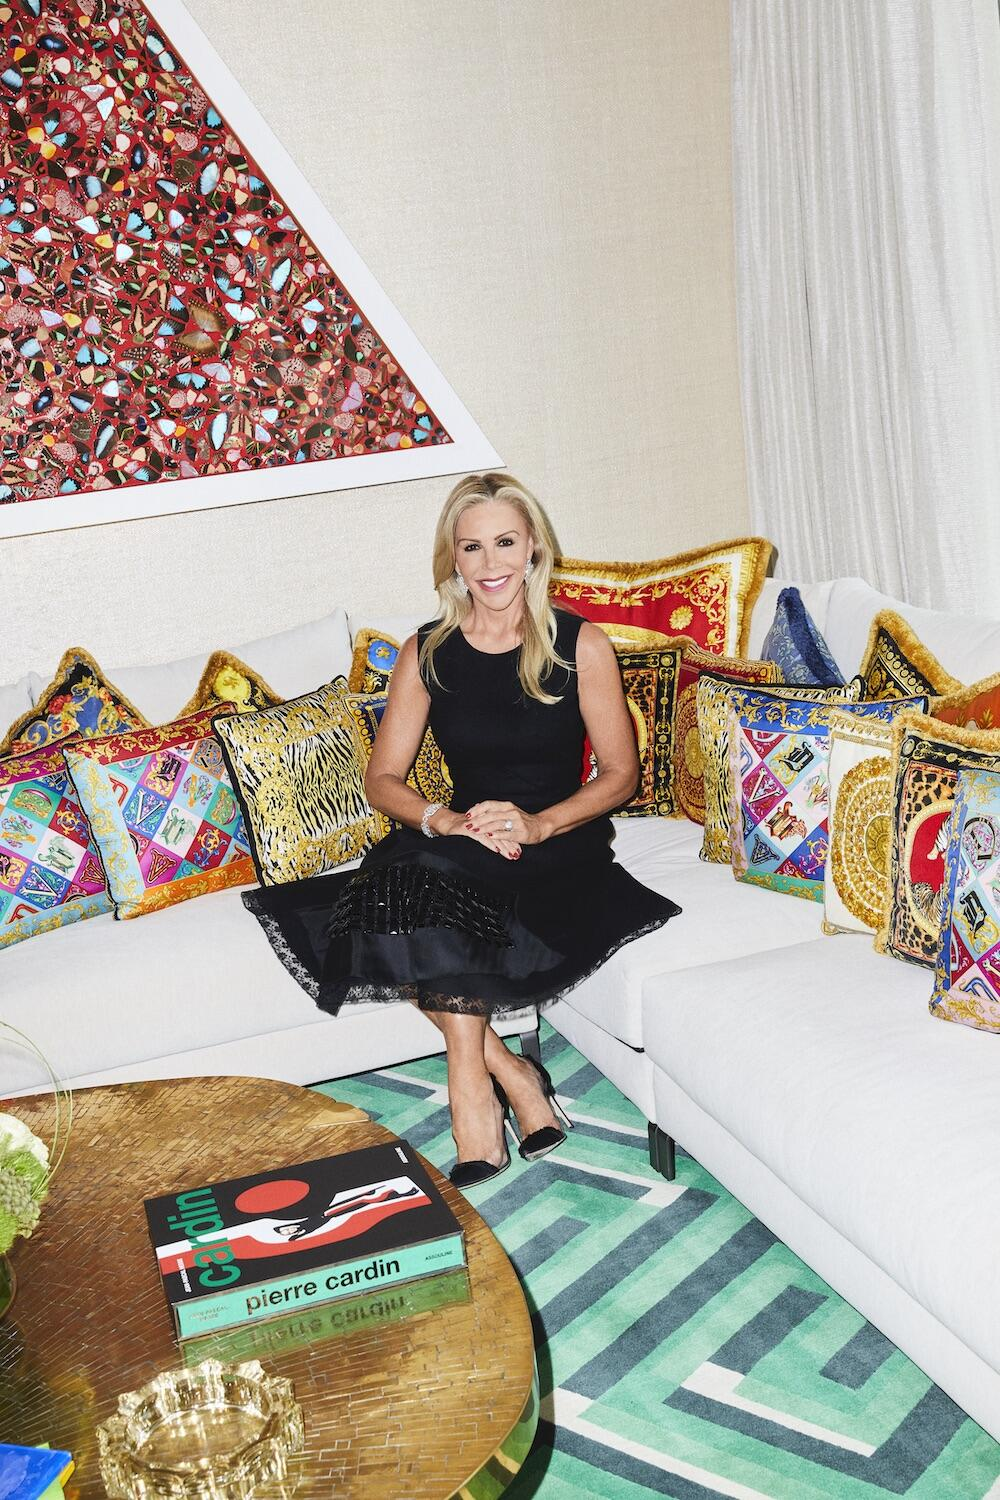 Amy Phelan in the games room of her Stonefox-designed home, Palm Beach, Florida, May 2021. At left, on wall: Damien Hirst, A Beautiful Thing, 2002. All photography: Jeremy Liebman